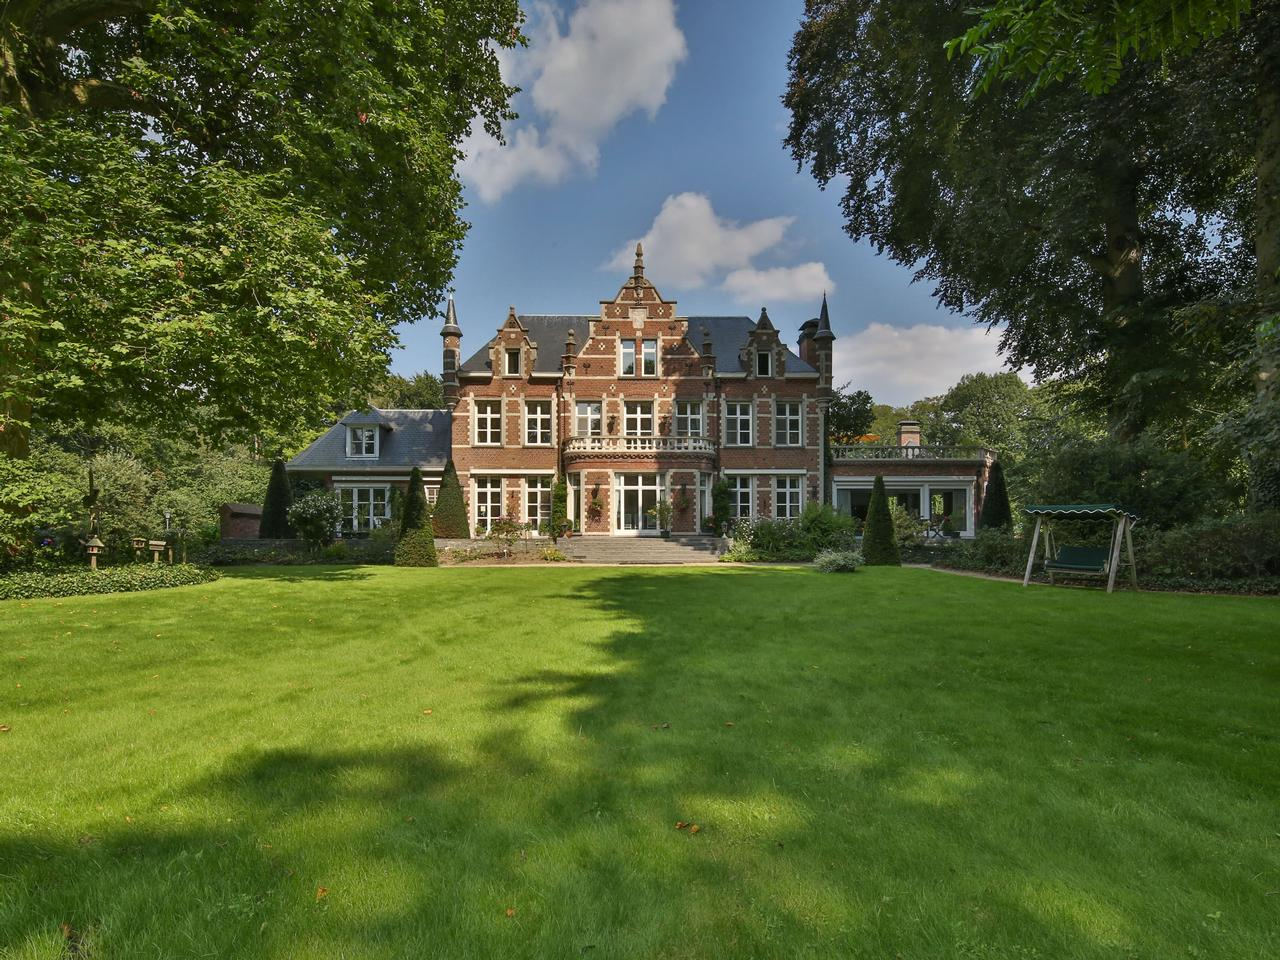 Other Residential for Sale at Province d'Anvers I Malines Other Belgium, Other Areas In Belgium, 2820 Belgium